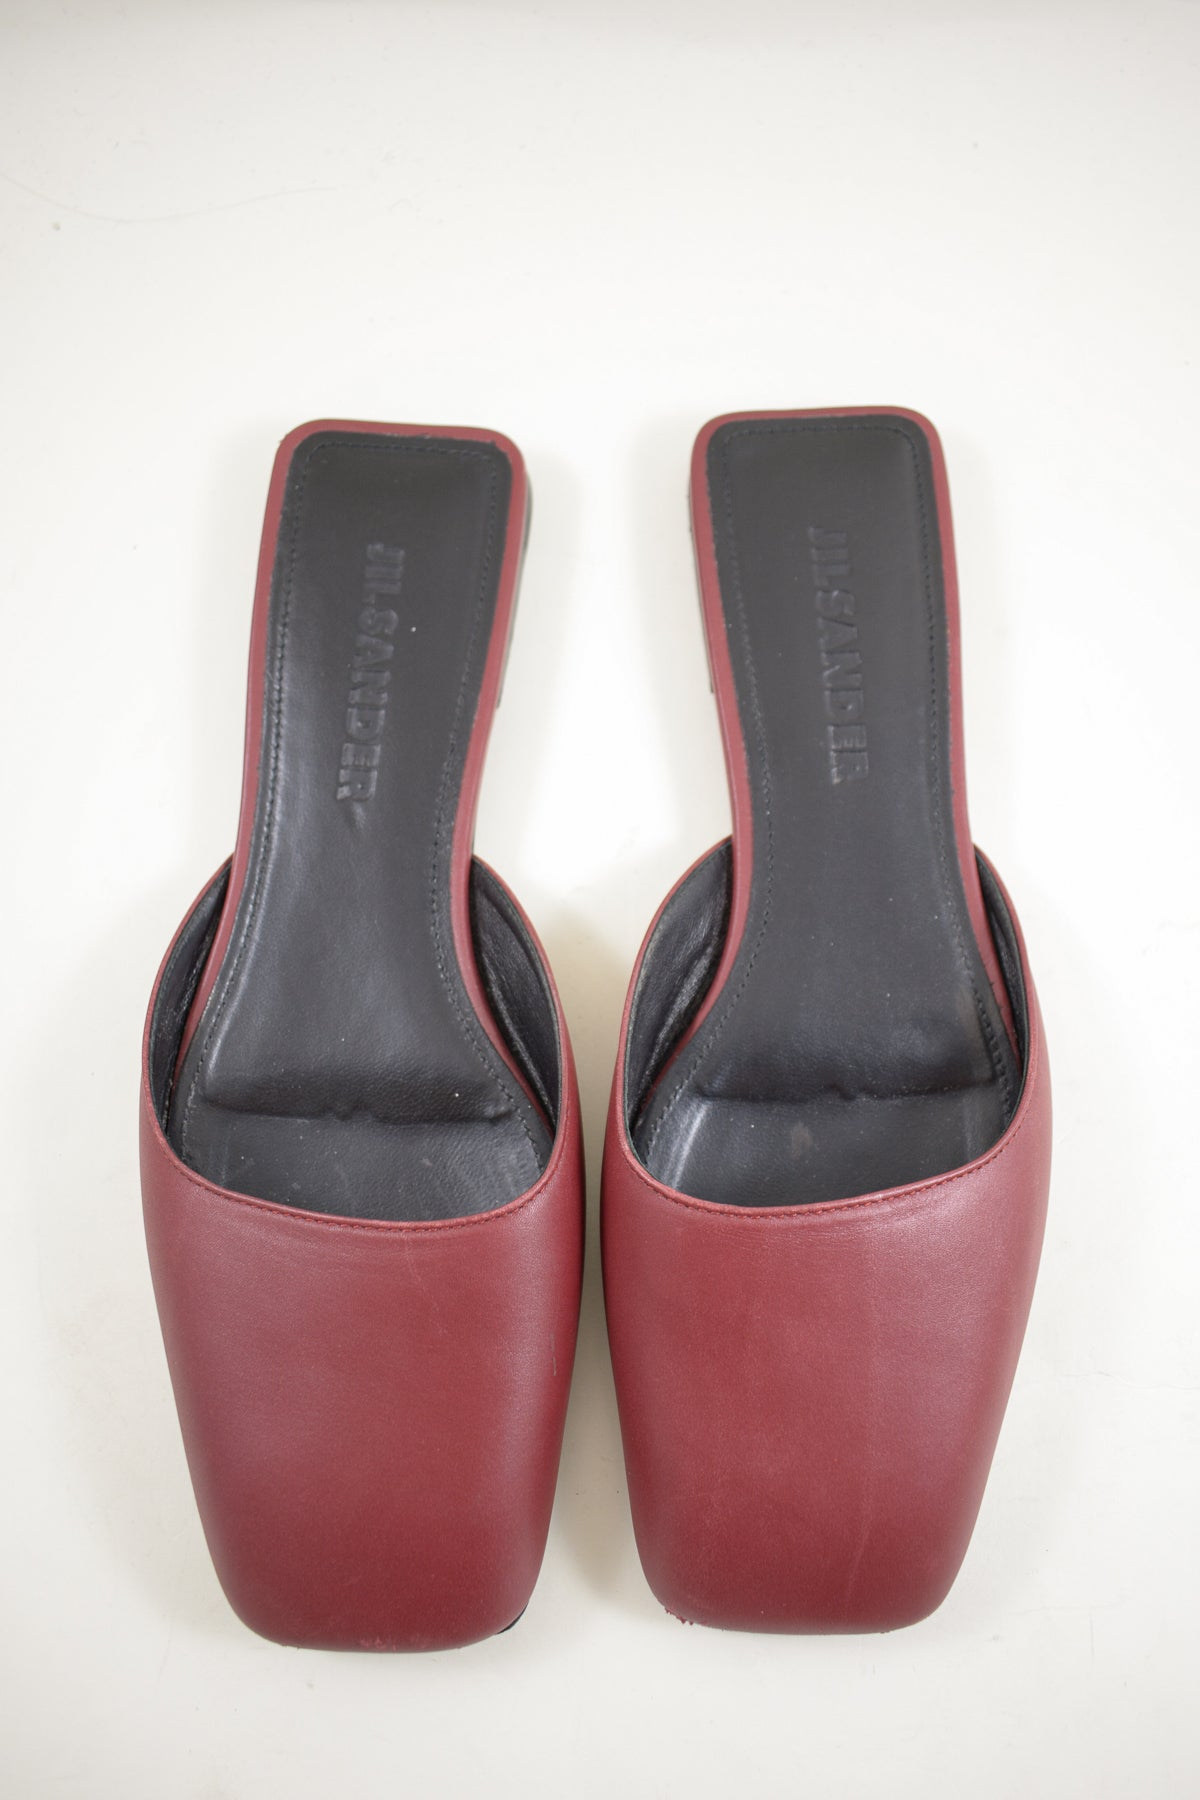 Jil Sander Red Slides Sz 36